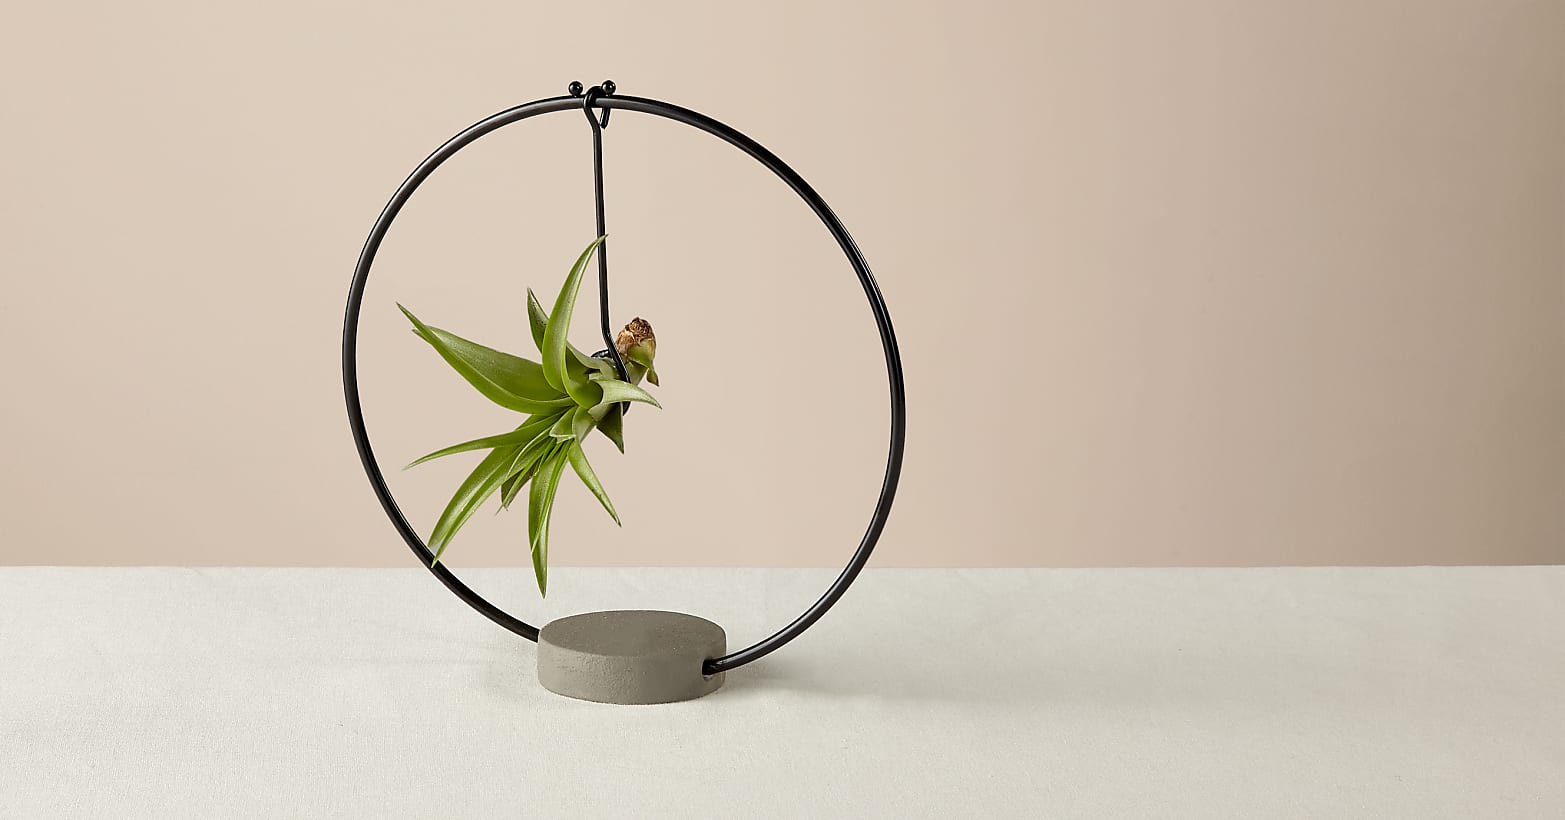 Hanging Air Plant - Image 2 Of 2